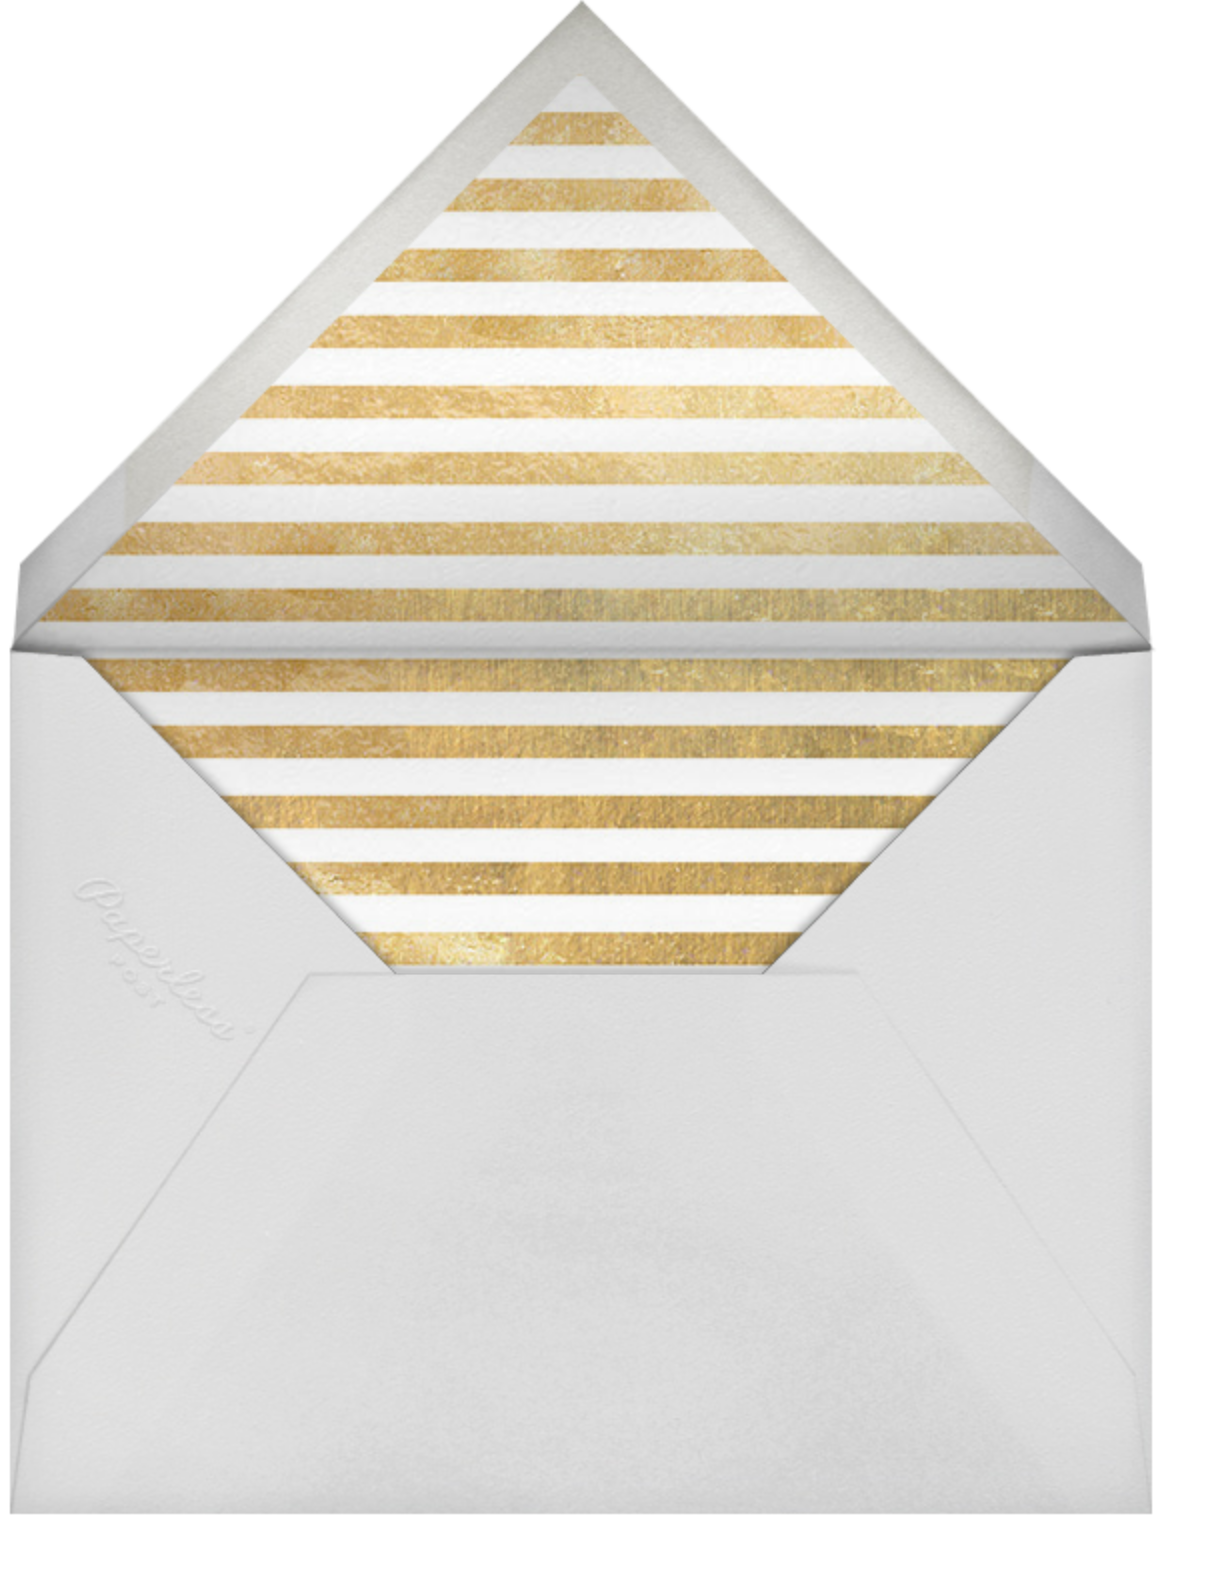 Evergreen Stripes - Gold/White - kate spade new york - Adult birthday - envelope back